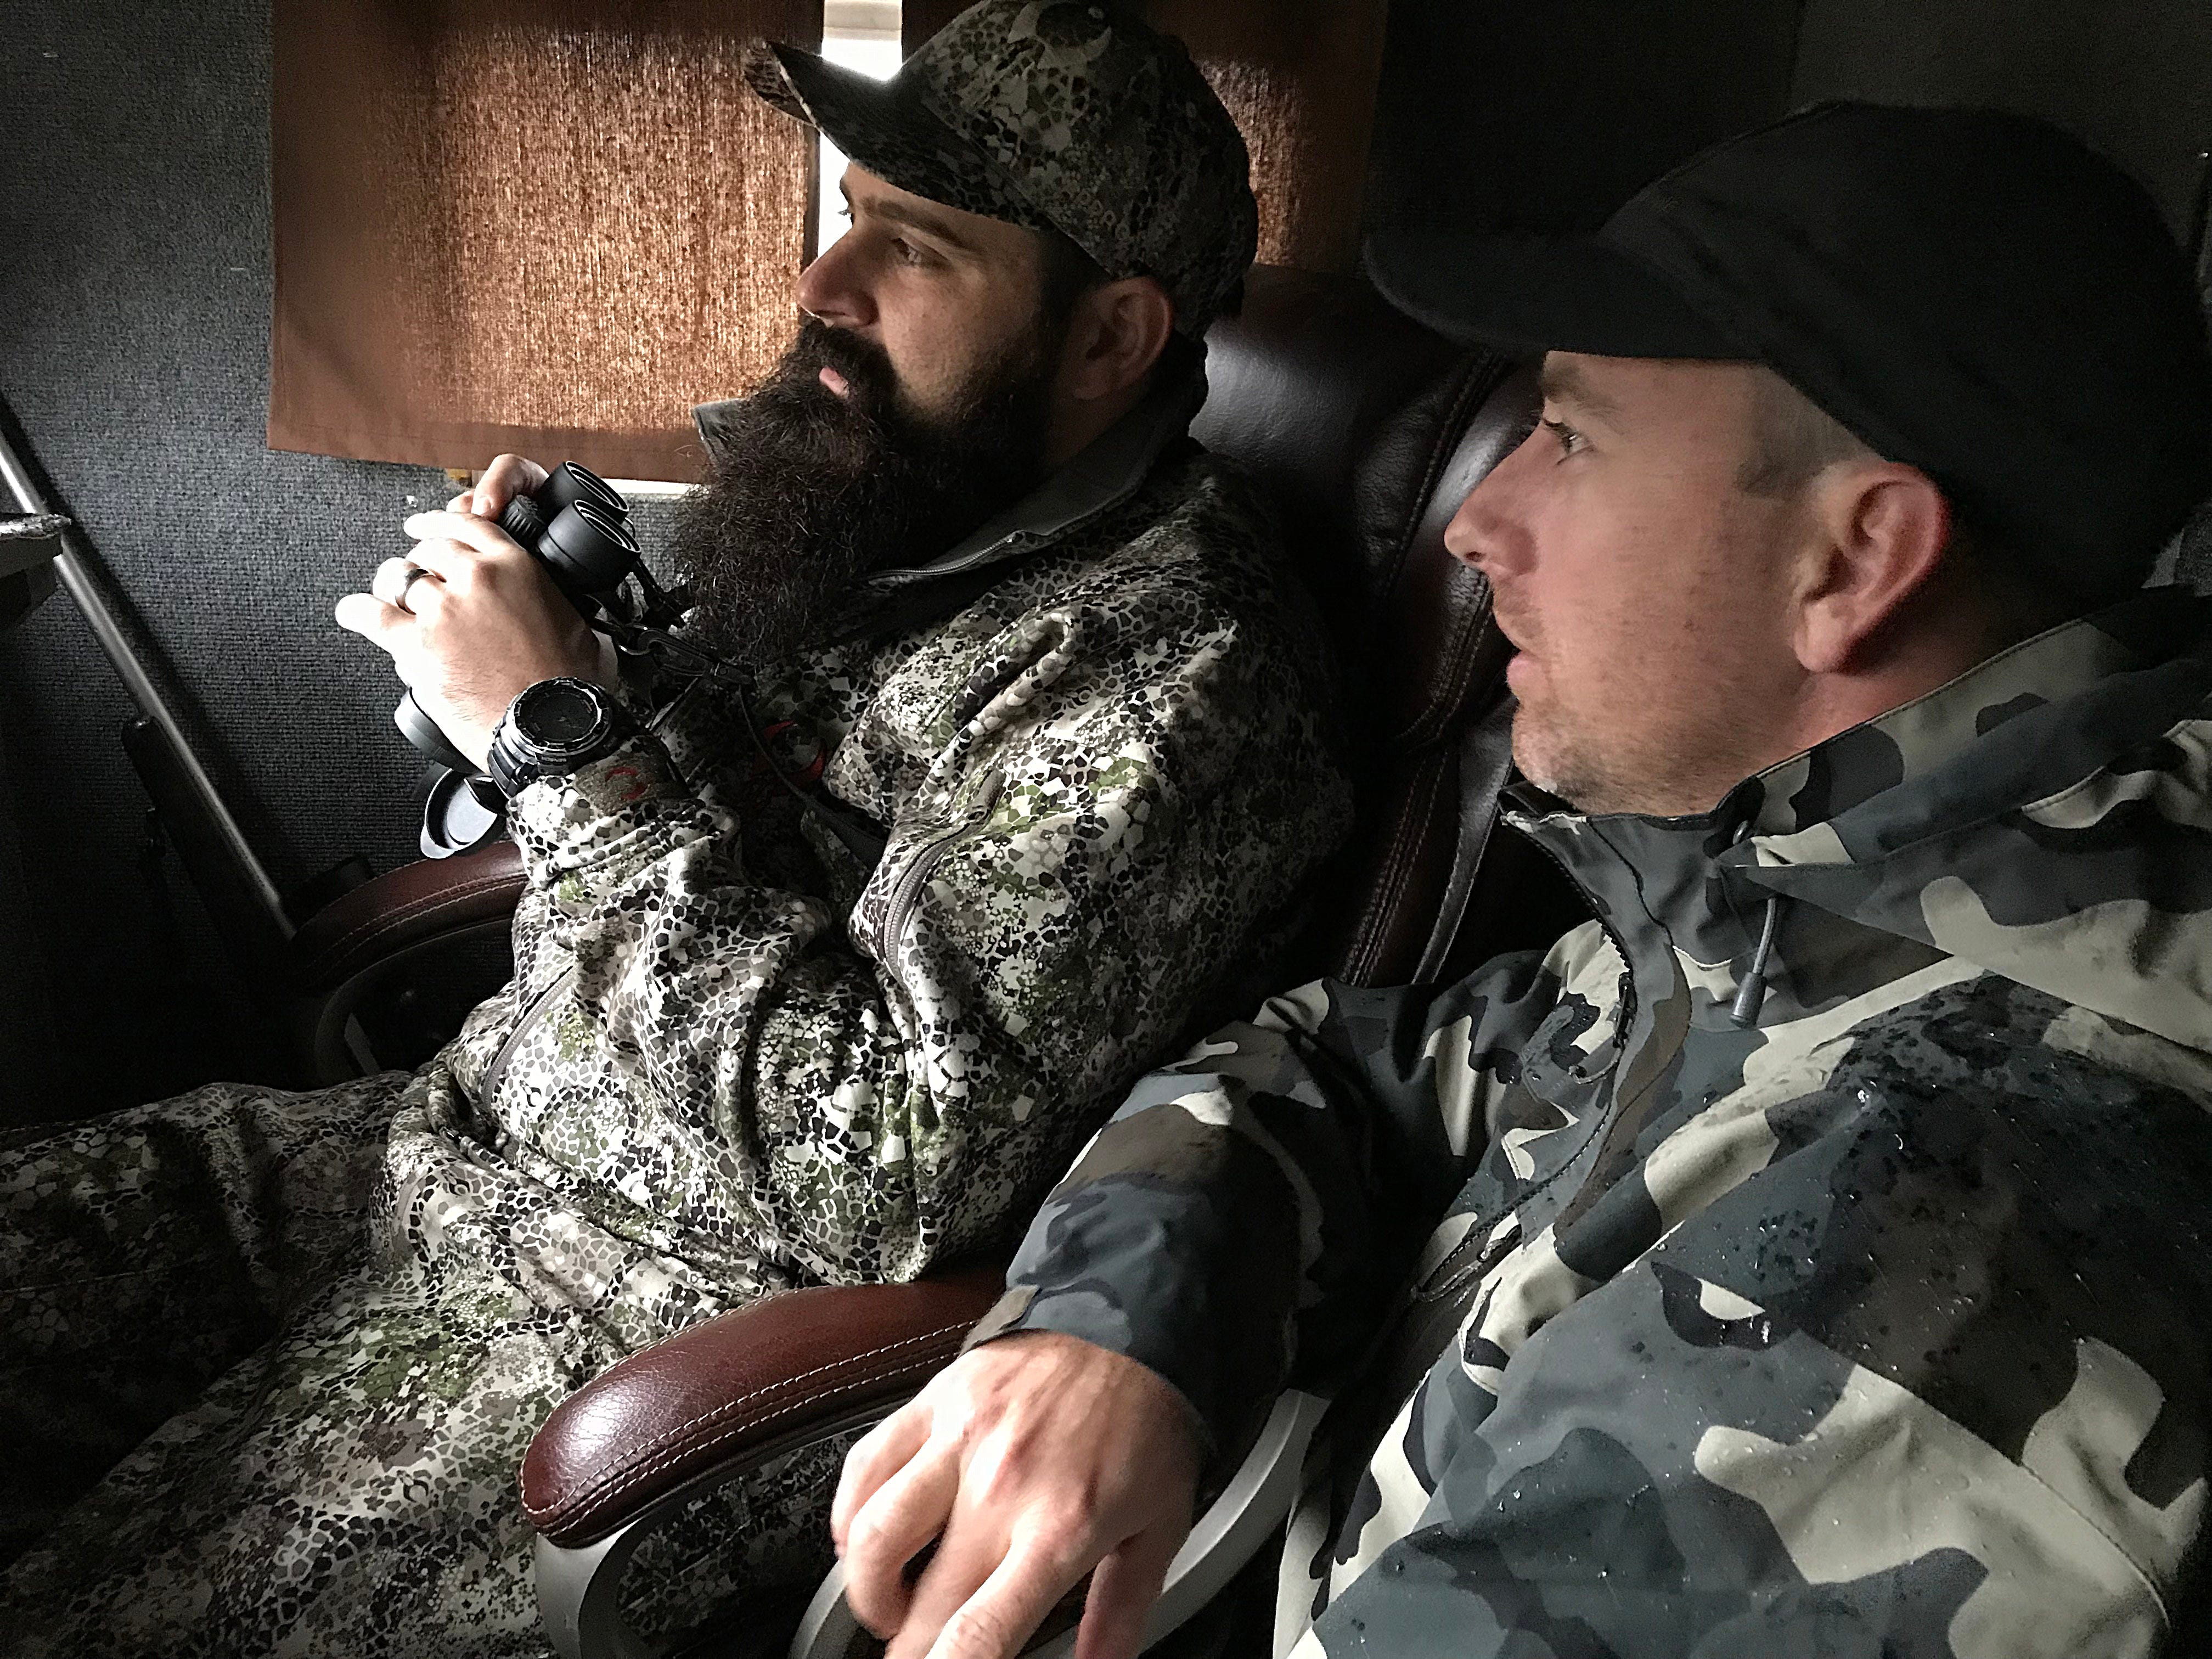 Joseph Lewis (left) and his guide Ryan Dupriest watch for deer during the annual hunt for veterans in Christoval Friday, Dec. 7, 2018 sponsored by San Angelo Support for Veterans and Lone Star Warriors Outdoors.